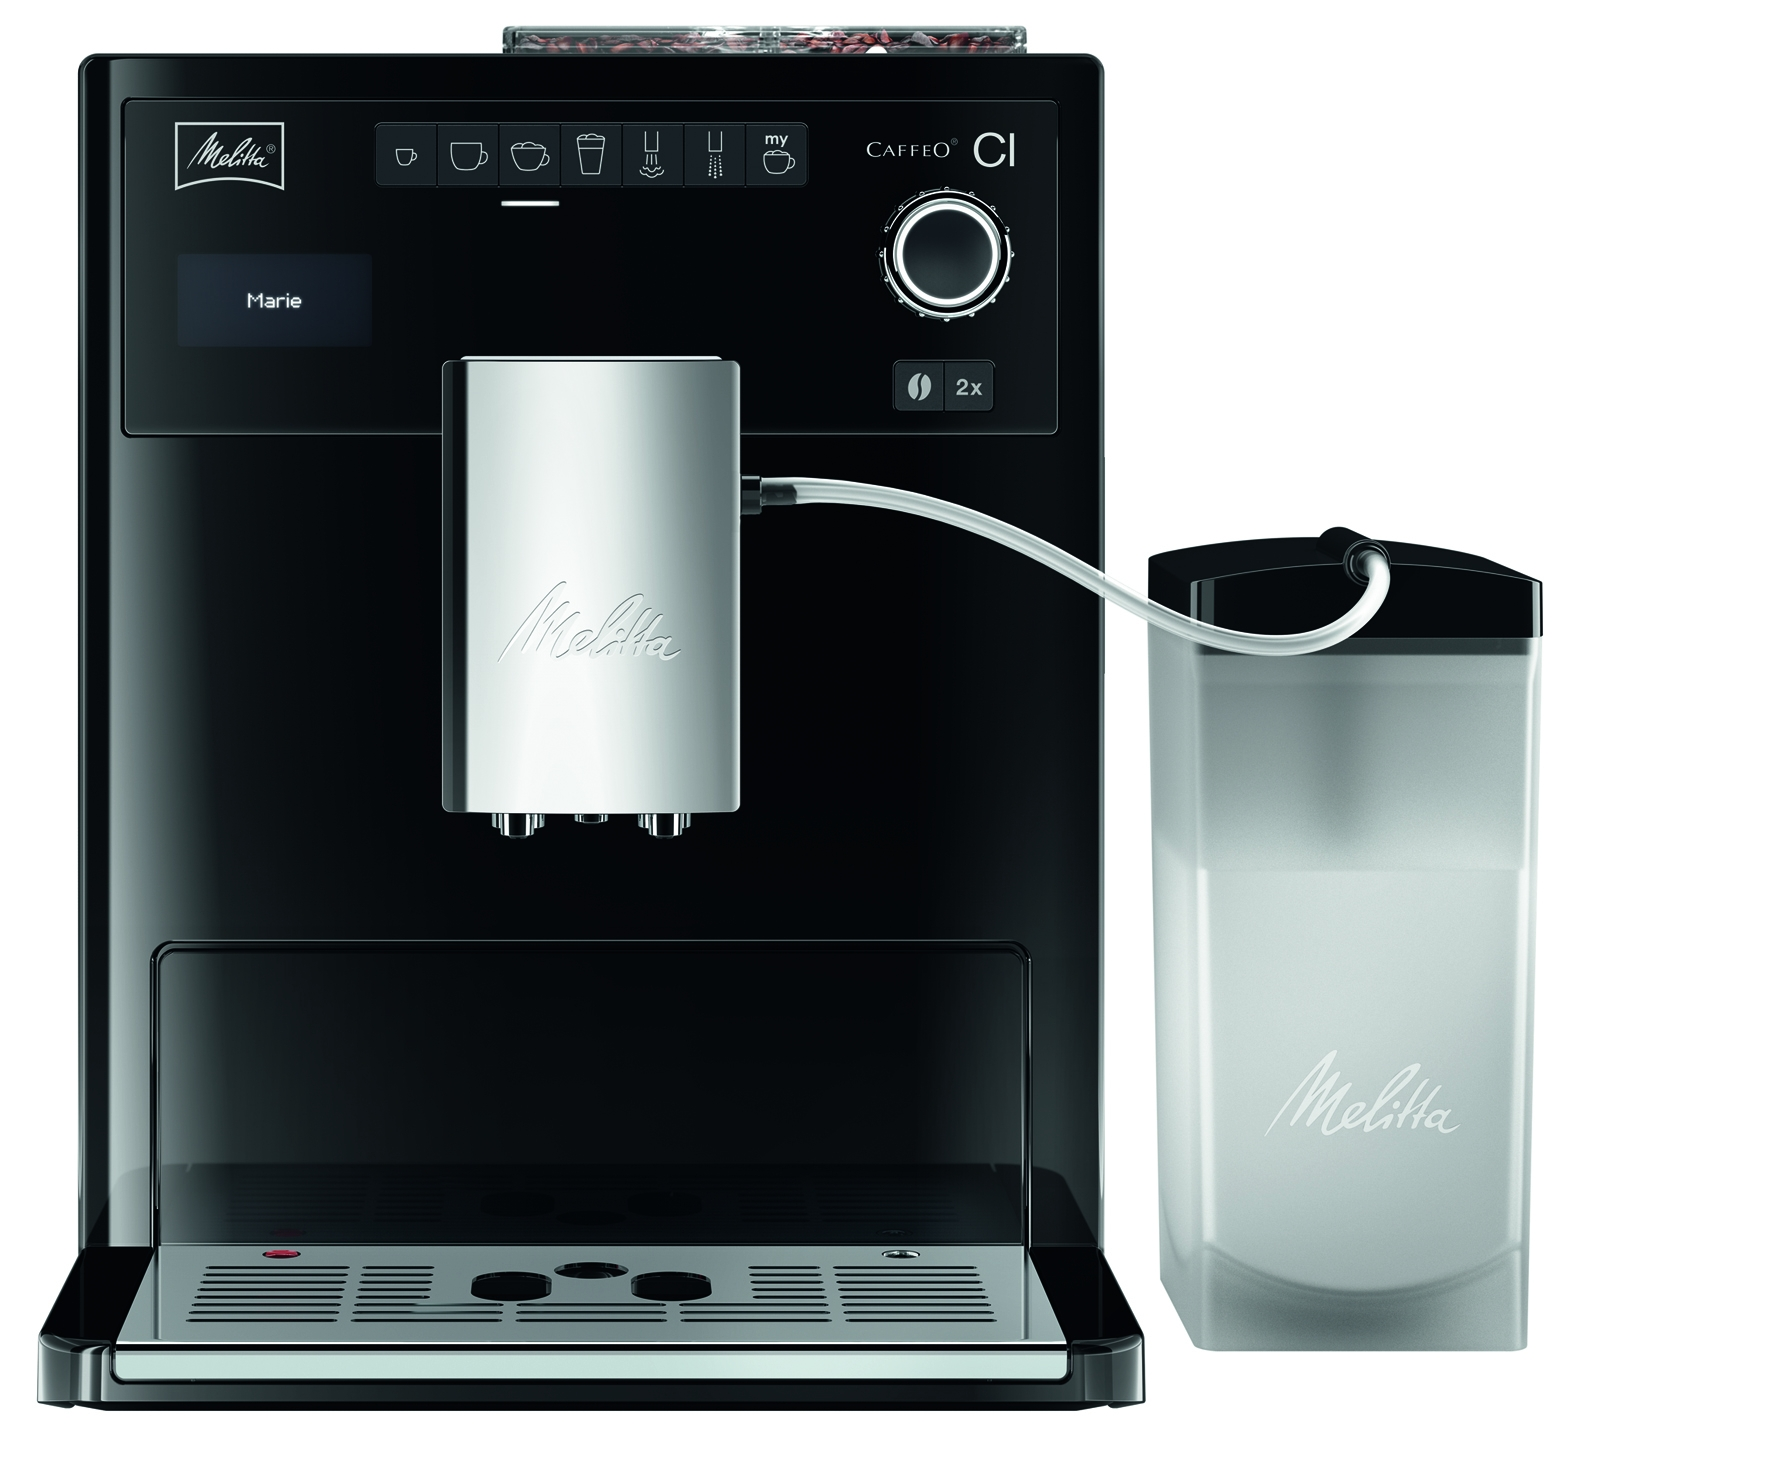 Melitta caffeo ci intensive cleaning